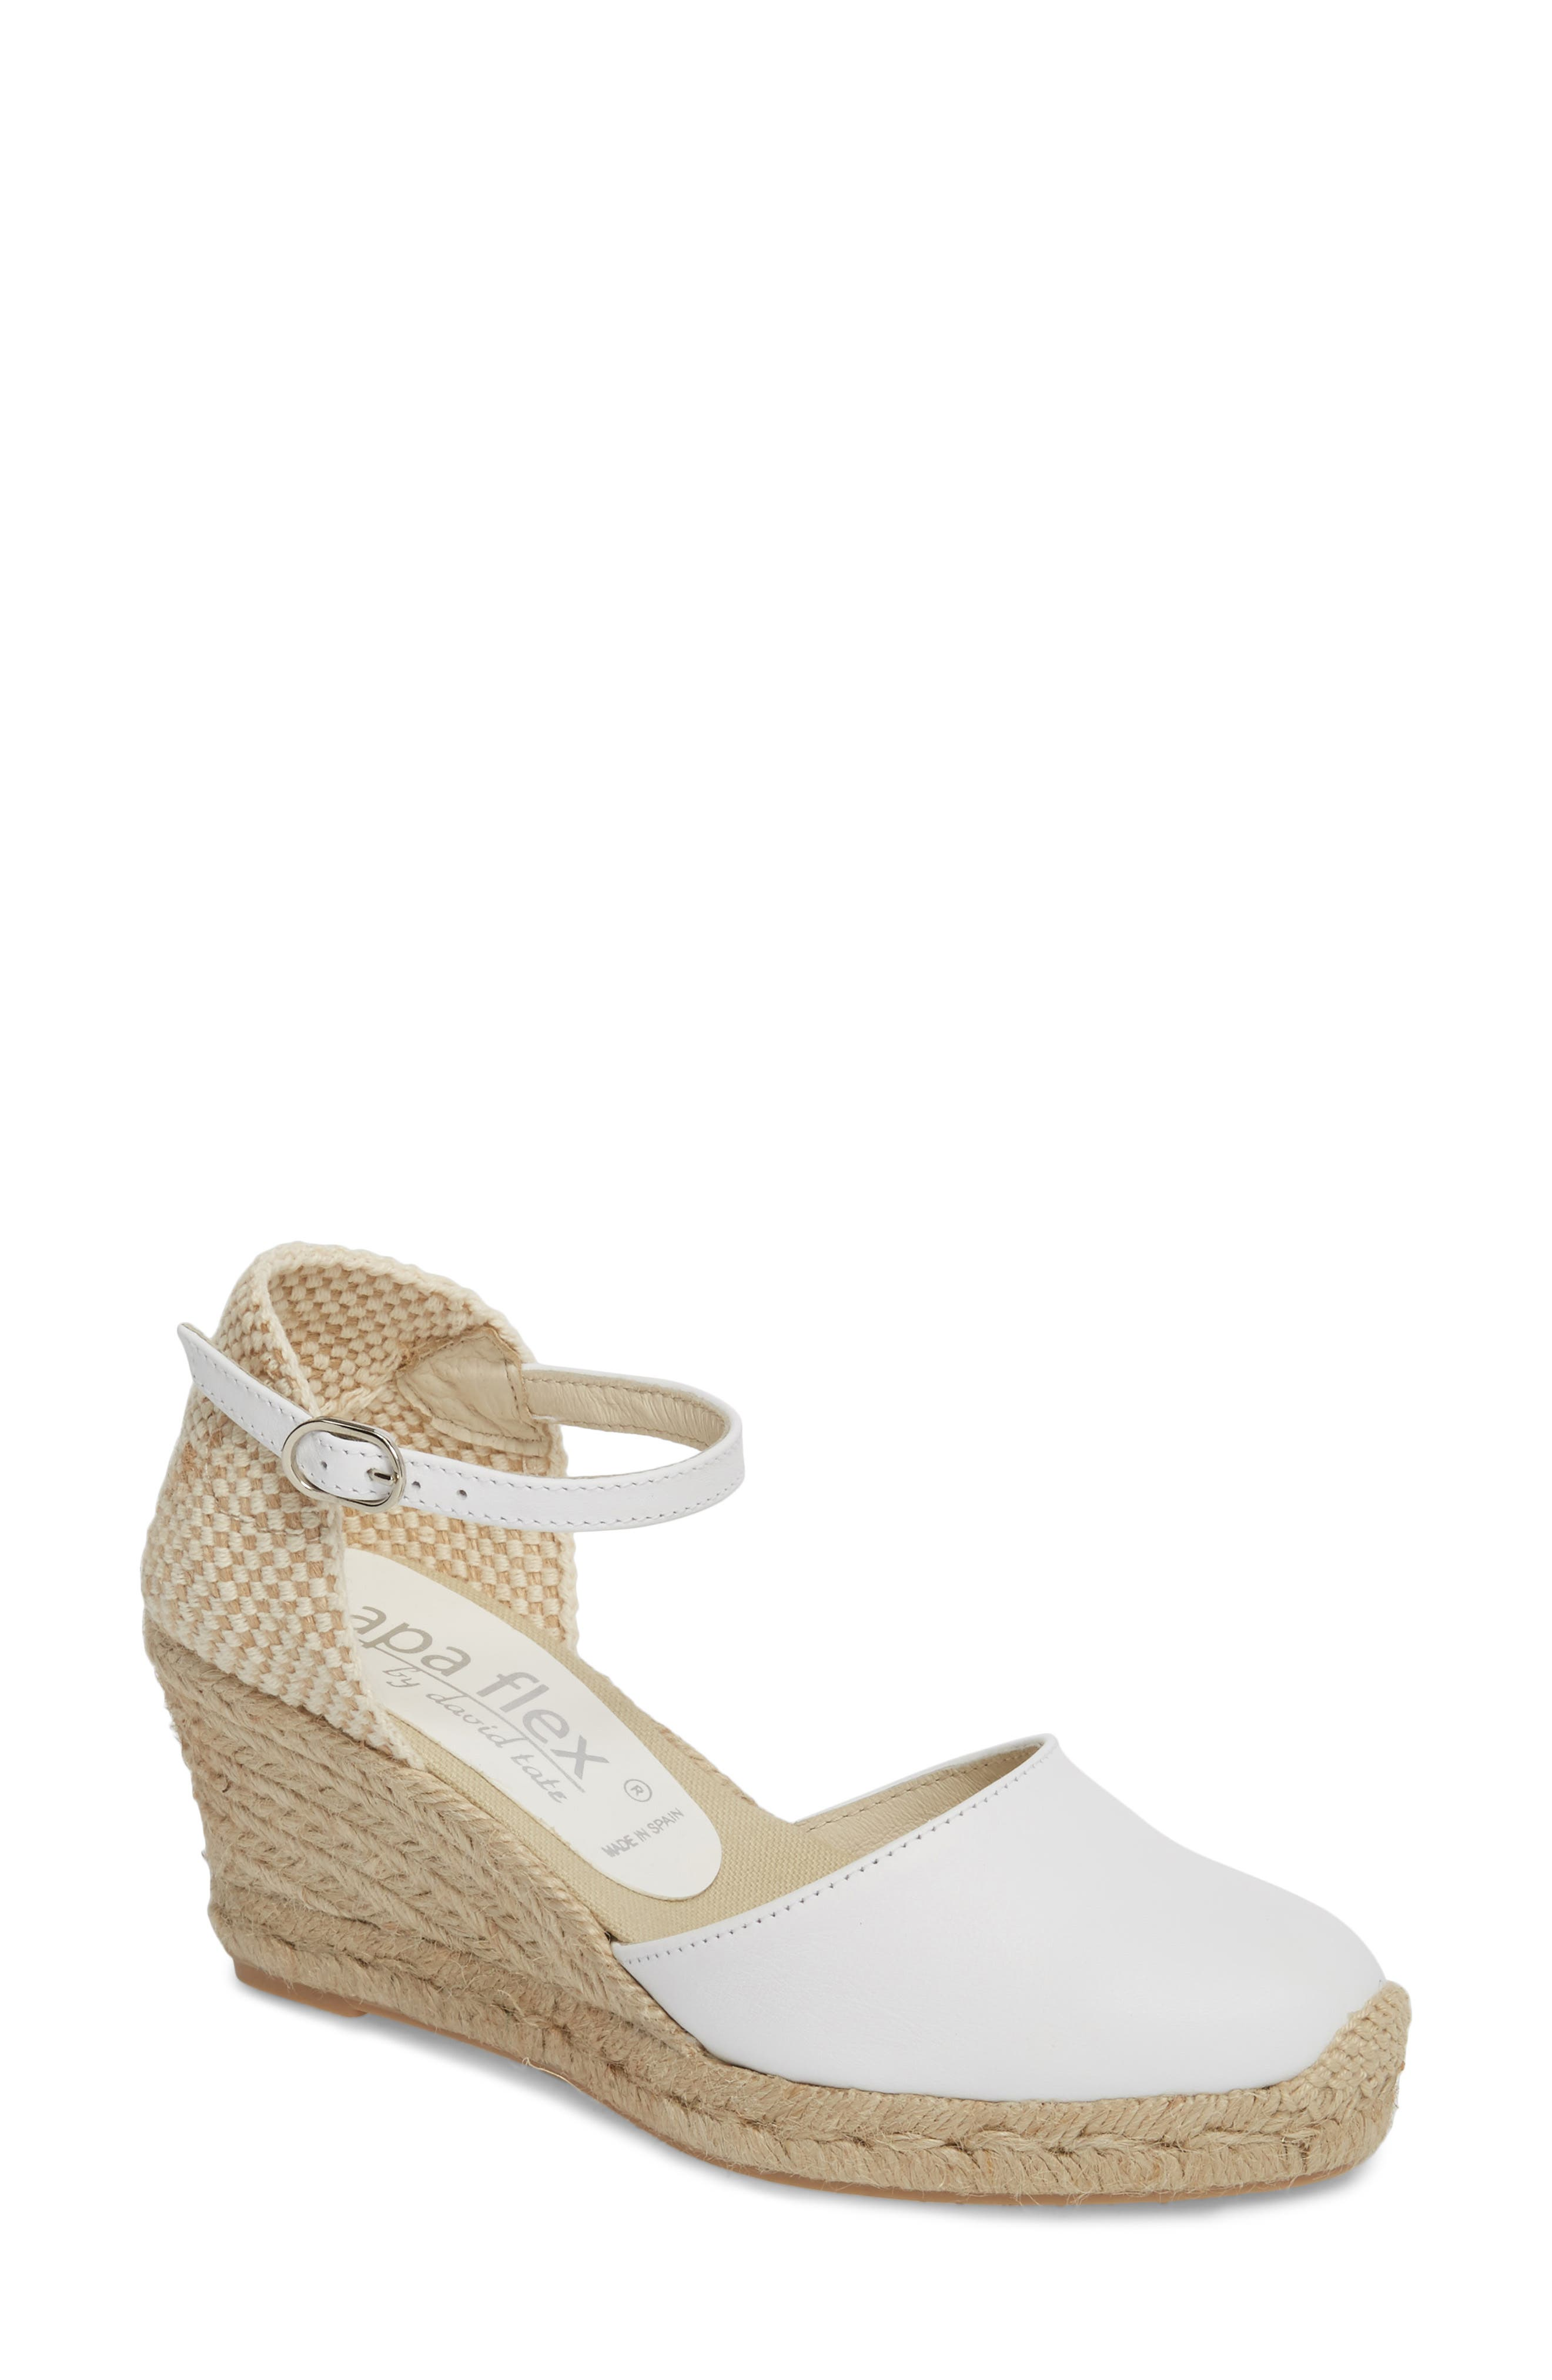 Europa Wedge Sandal,                         Main,                         color, WHITE LEATHER